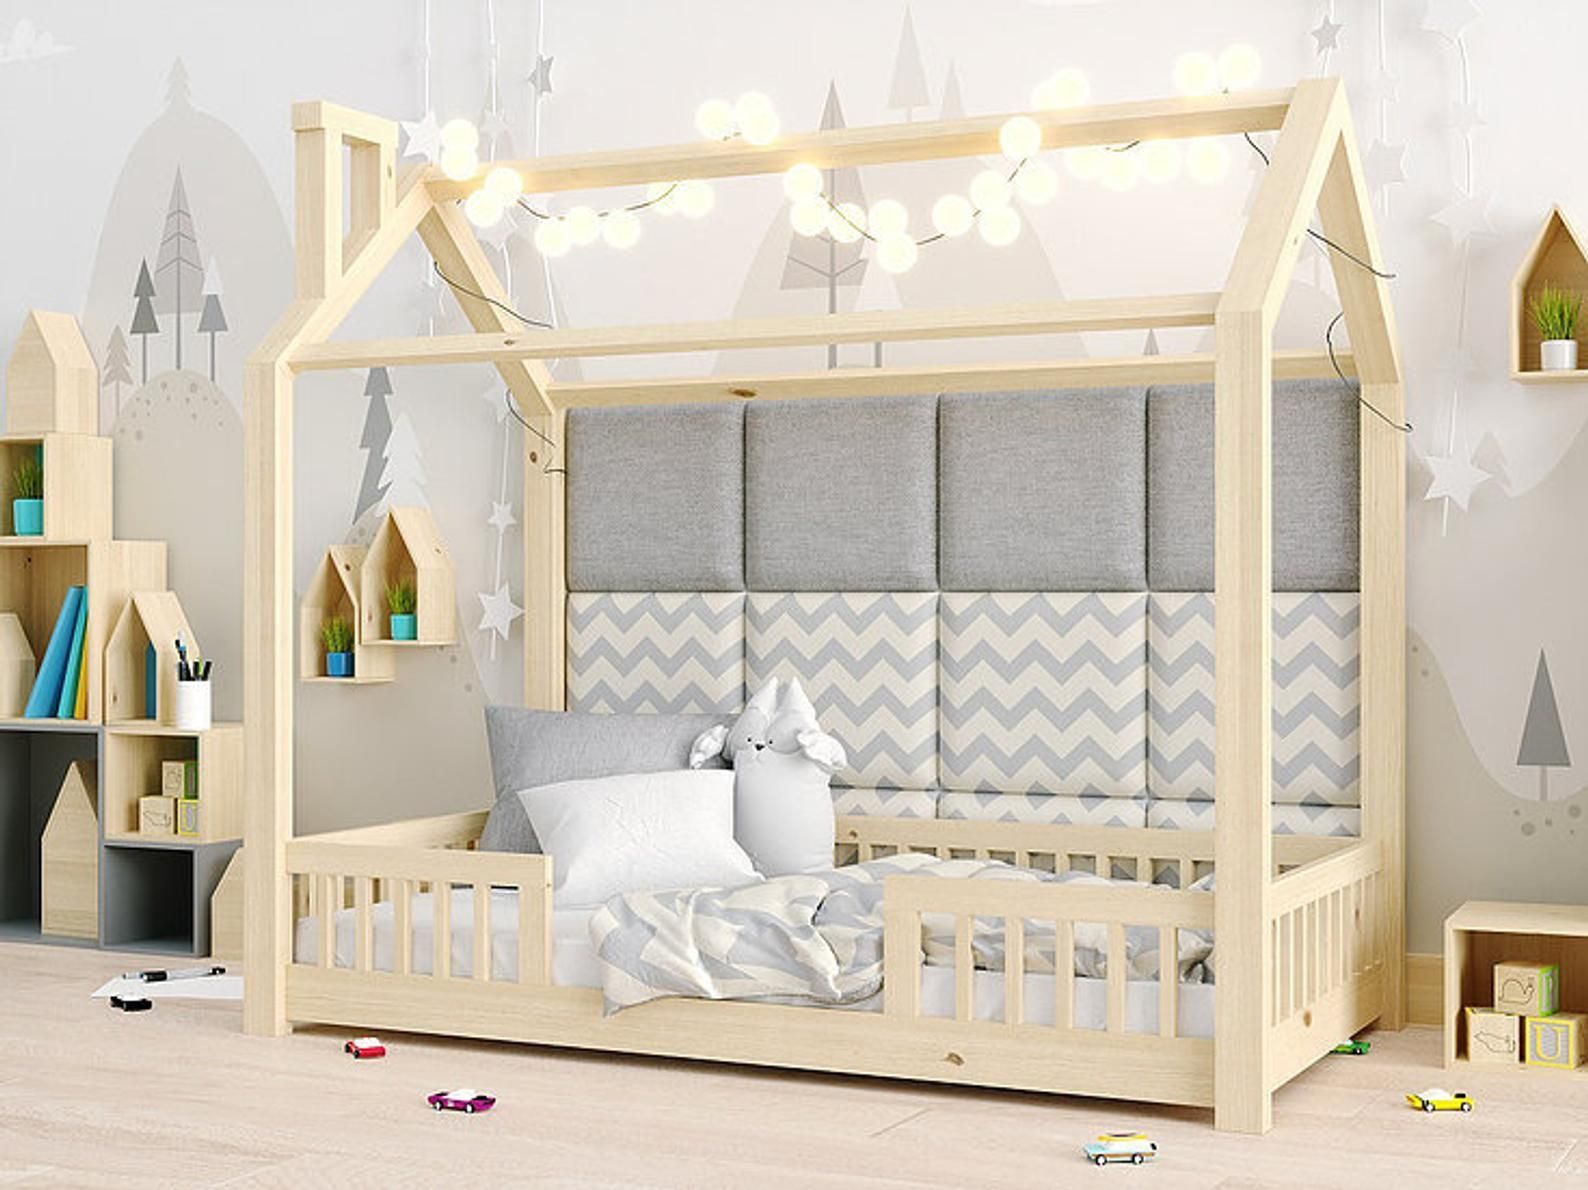 Kinderbett Haus Hausbett Kinderbett Kinderbett Holz Bett Kinderzimmer Kinderbett Kiefernholz Kinderbett Mit Rausfallschutz House Beds For Kids House Beds Toddler House Bed